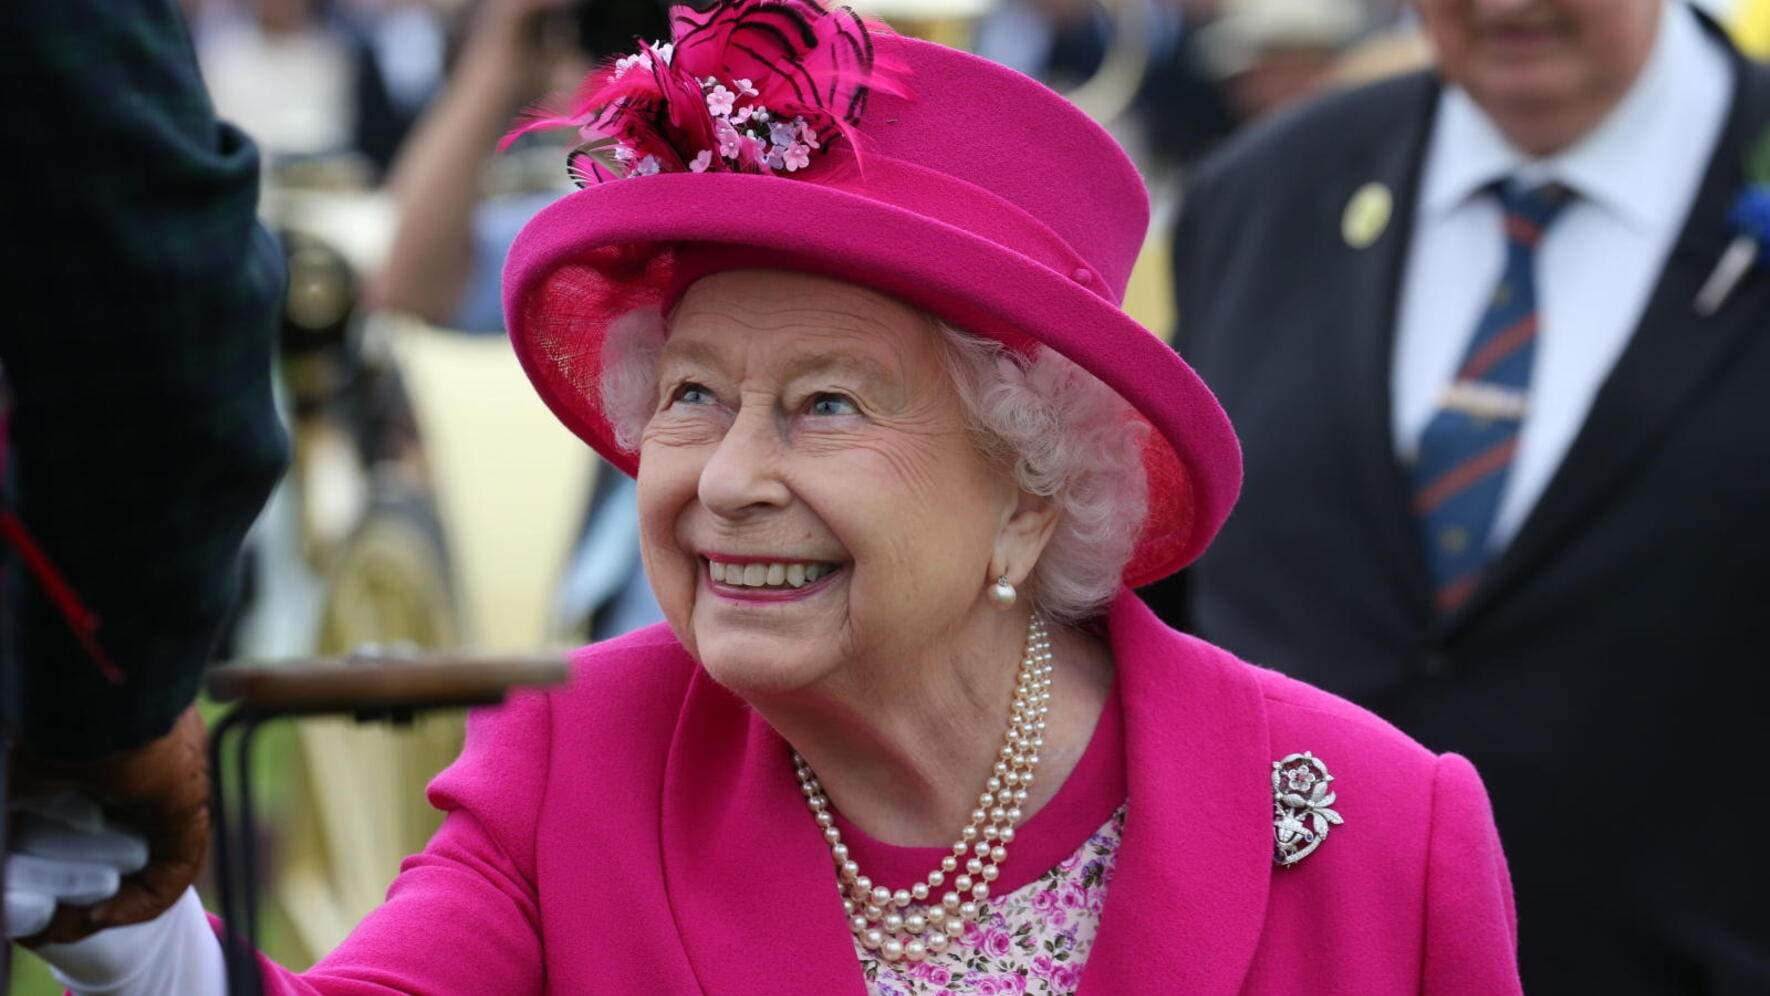 23/06/2019. Windsor, United Kingdom: Queen Elizabeth II at the Royal Windsor Cup at Guards Polo Club in Windsor, United Kingdom: (Stephen Lock / i-Images / Polaris) (FOTO:DUKAS/POLARIS)